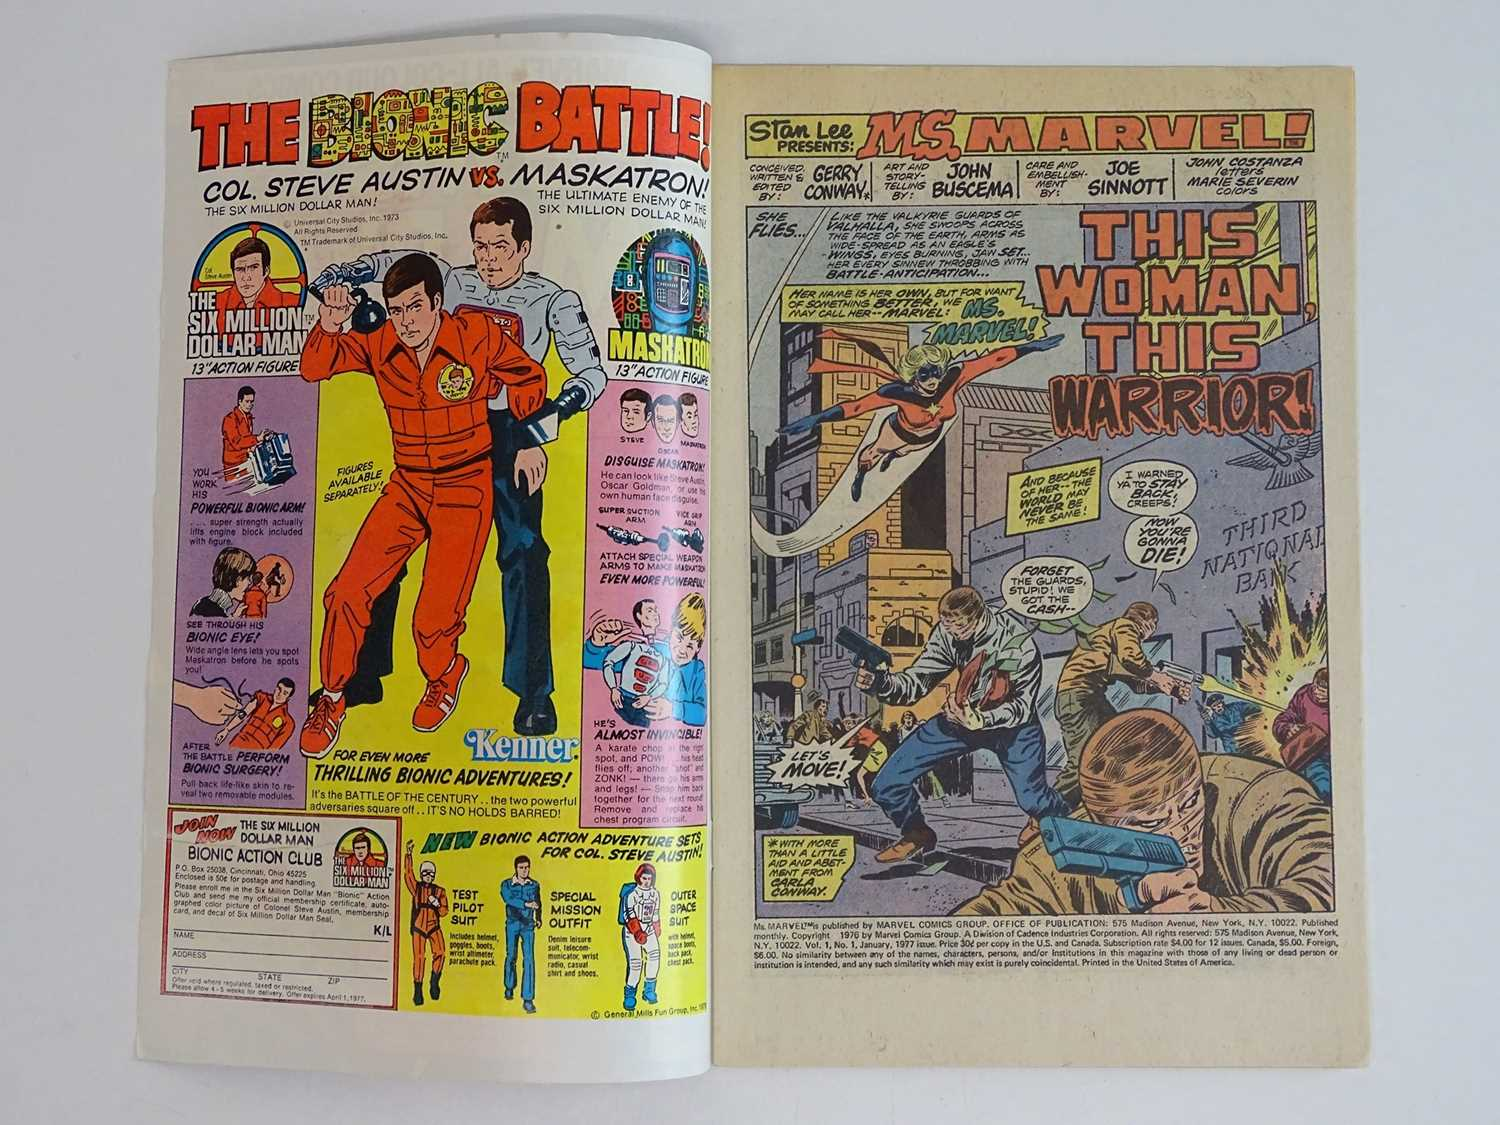 MS. MARVEL #1 - (1977 - MARVEL - UK Price Variant) - Ms. Marvel's first own title solo series + - Image 3 of 9